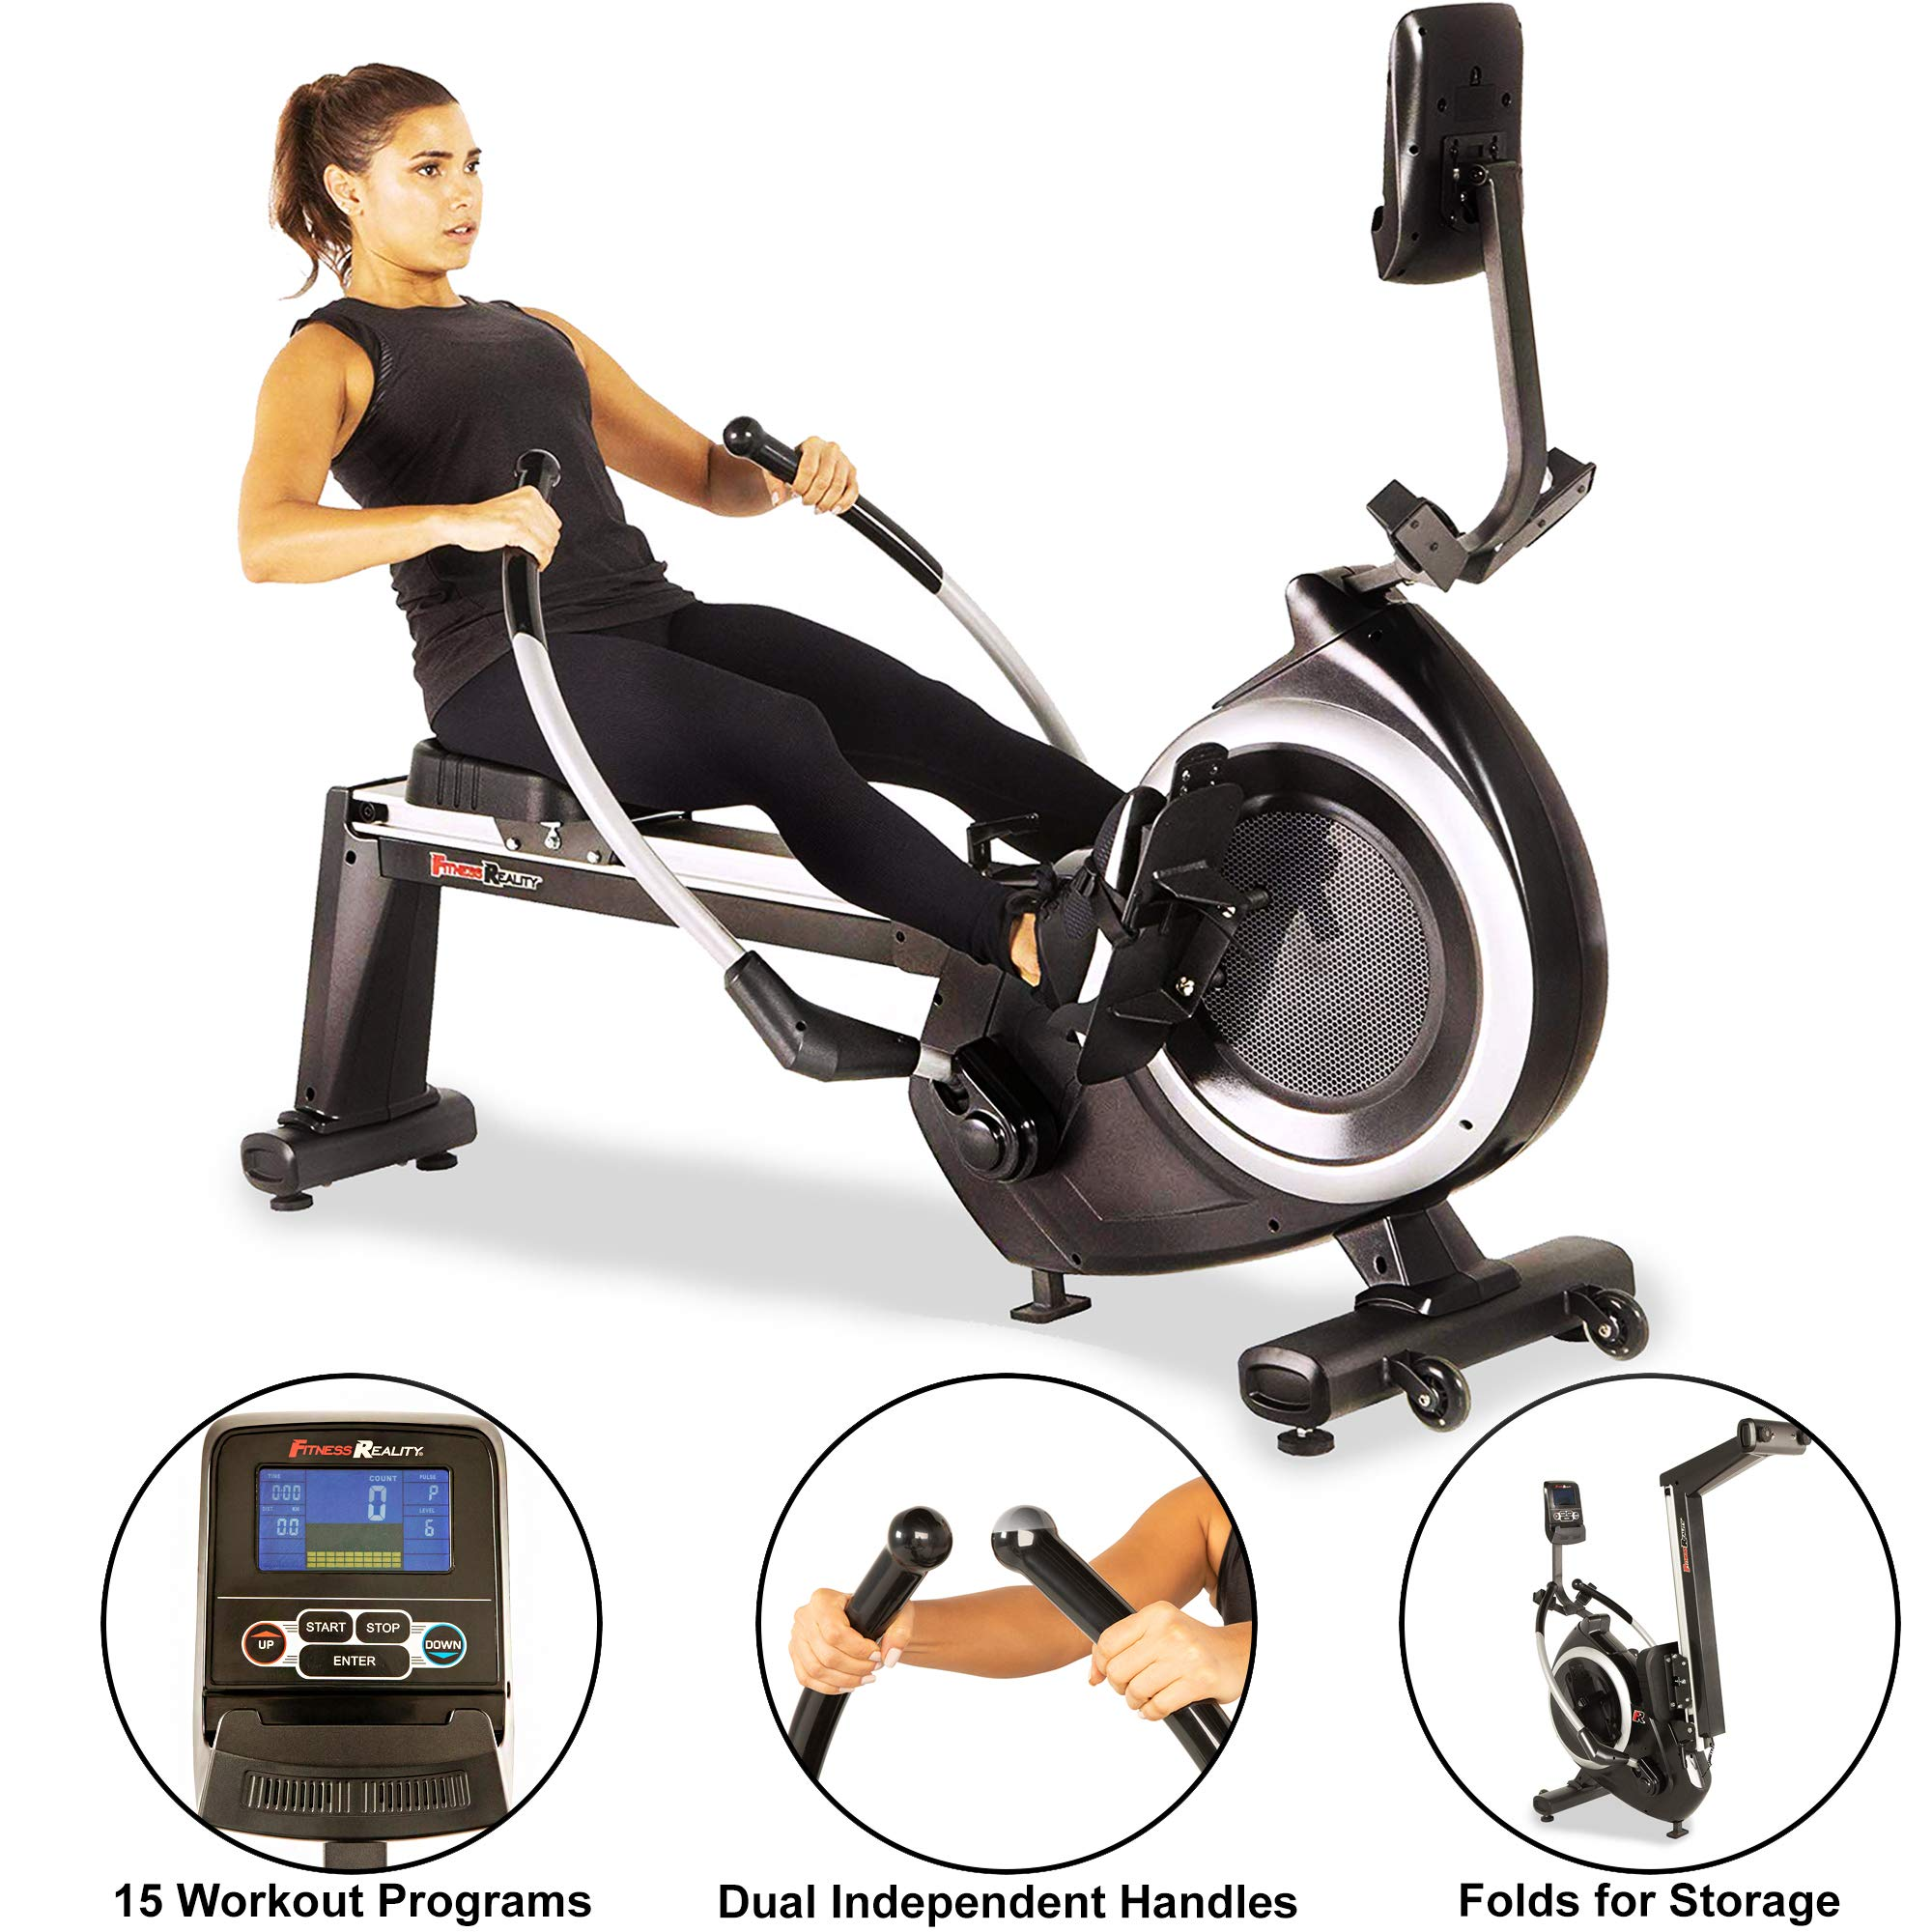 Fitness Reality 4000MR Magnetic Rower Rowing Machine with 15 Workout Programs by Fitness Reality